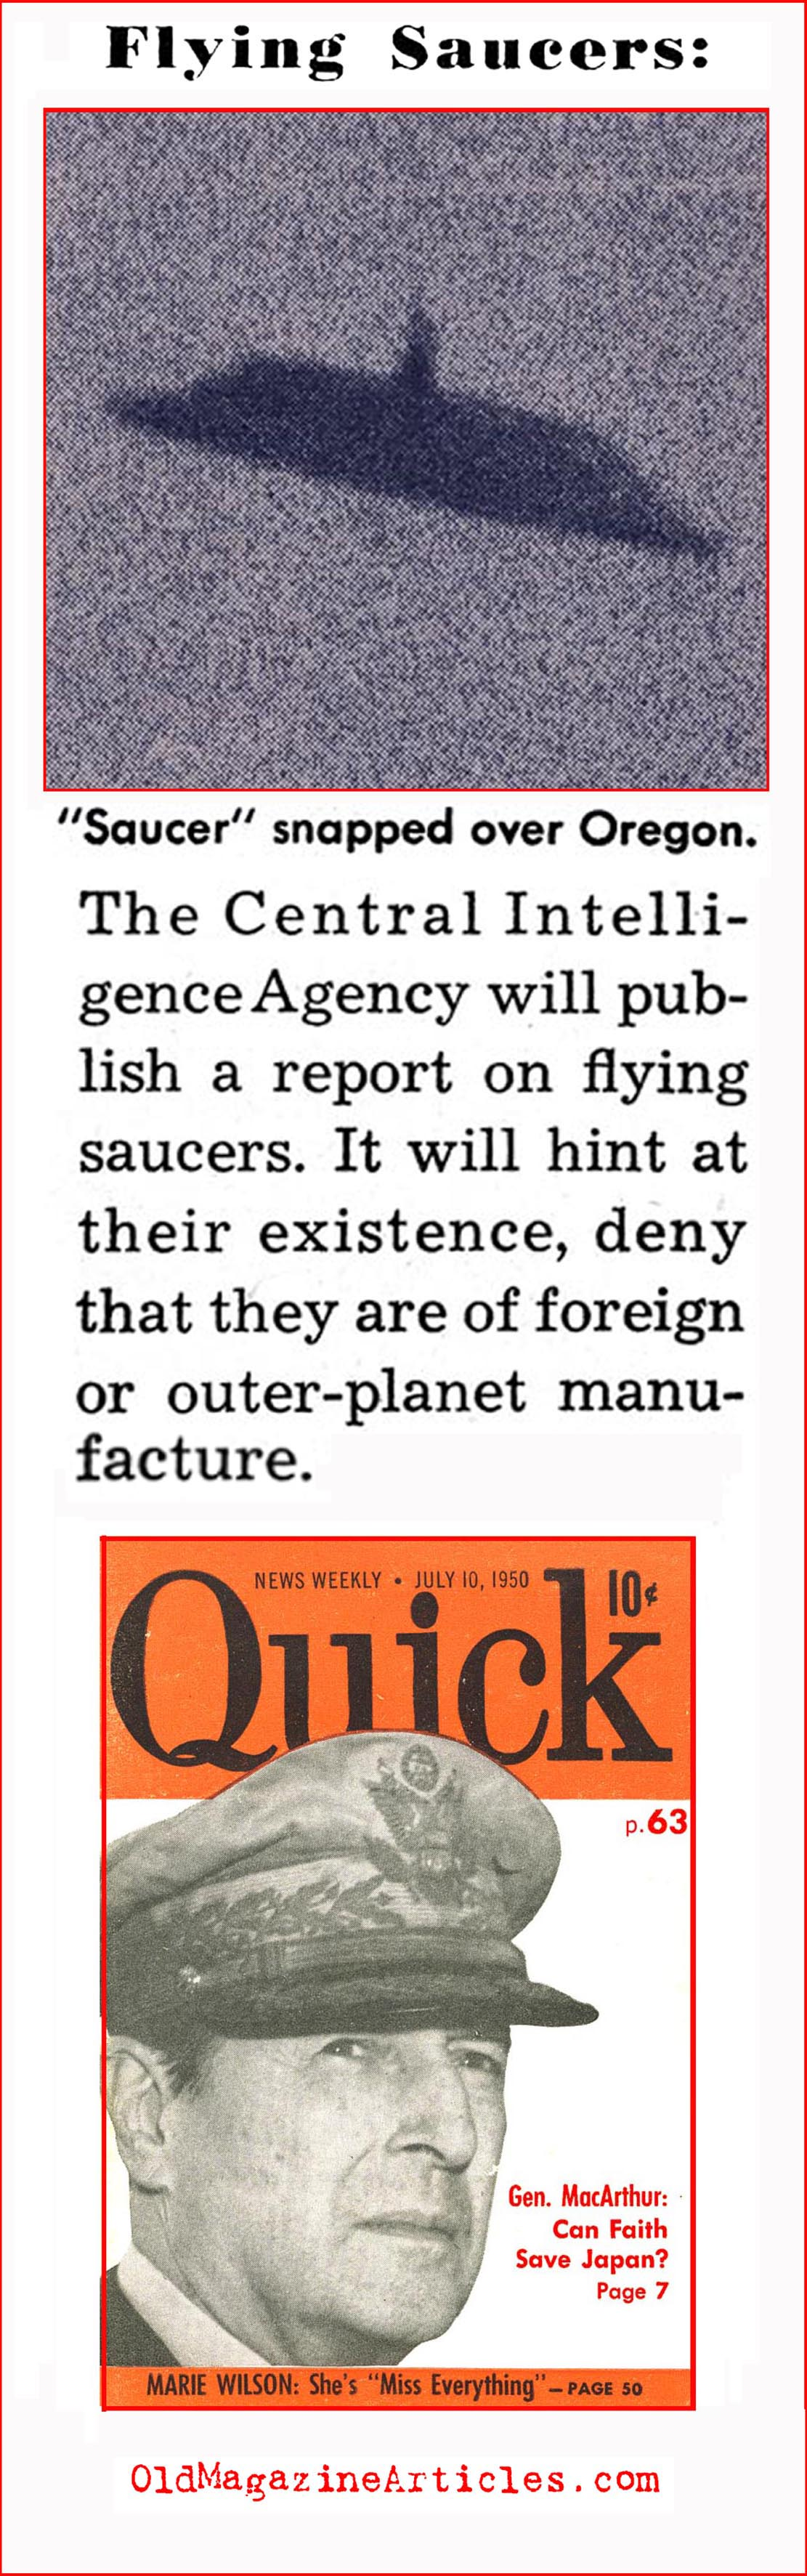 CIA Issues Report on UFO Sightings (Quick Magazine, 1950)